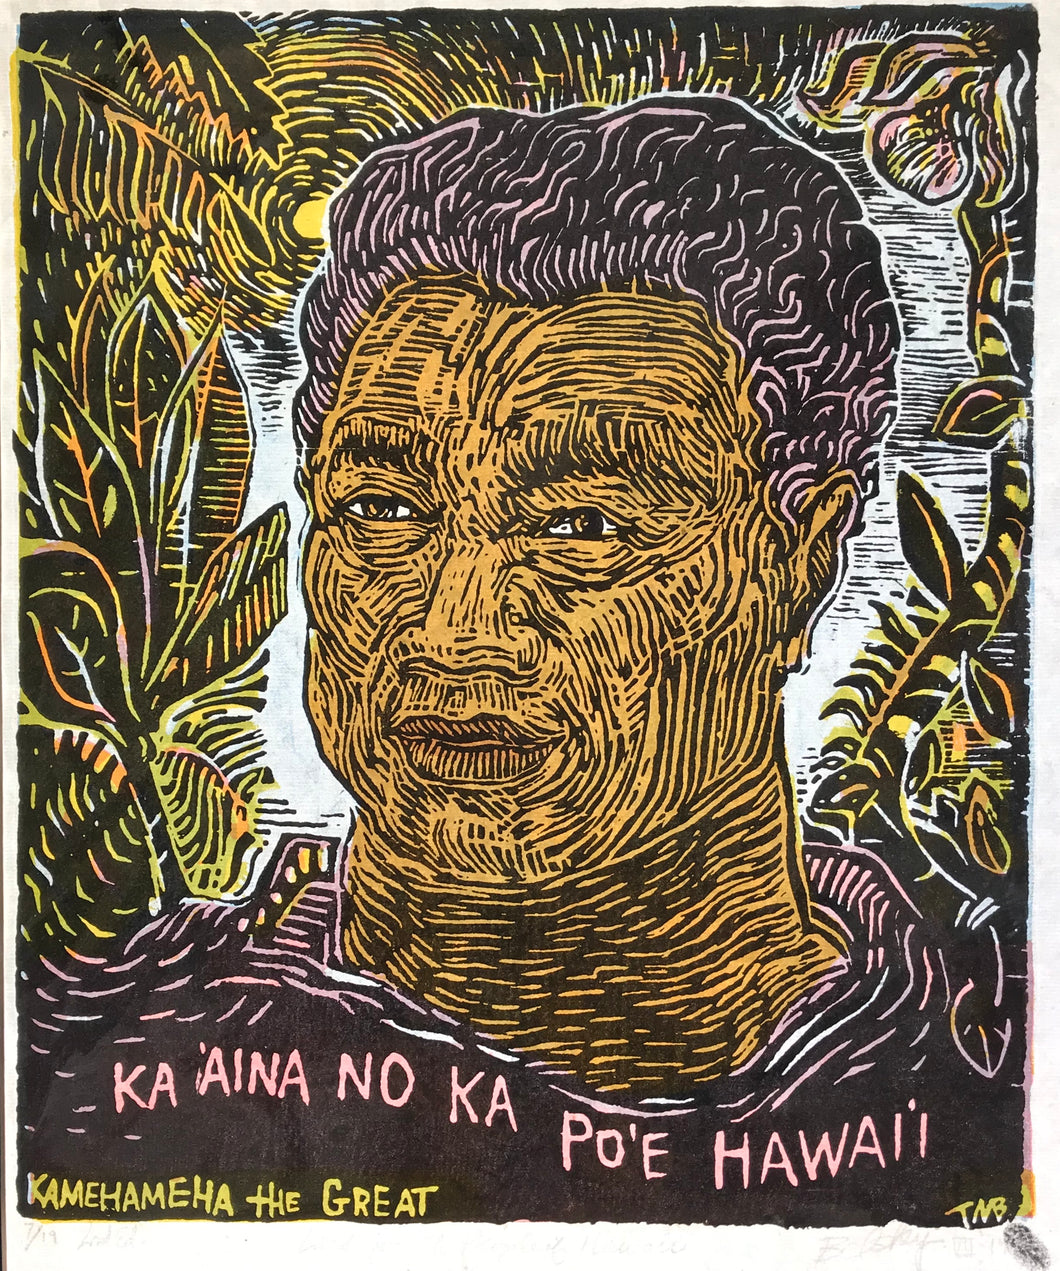 Kamehameha The Great - Multicolor limited edition print